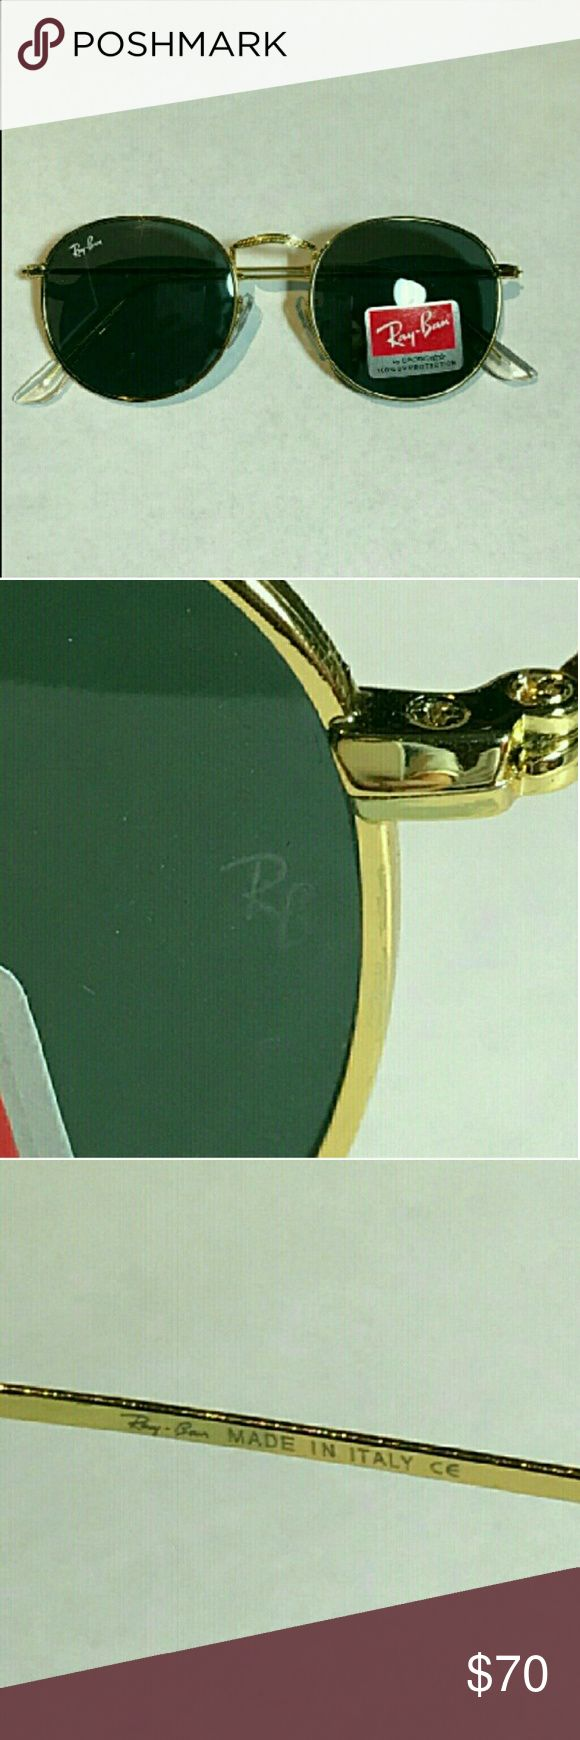 NWT Round Ray-Bans RB3447 Black/Gold These are round Ray-Bans RB3447 Sunglasses in BLACK lens GOLD frame. STANDARD SIZE. These sunglasses do not come with original packaging. Reasonable offers accepted. Same day shipping Ray-Ban Accessories Glasses